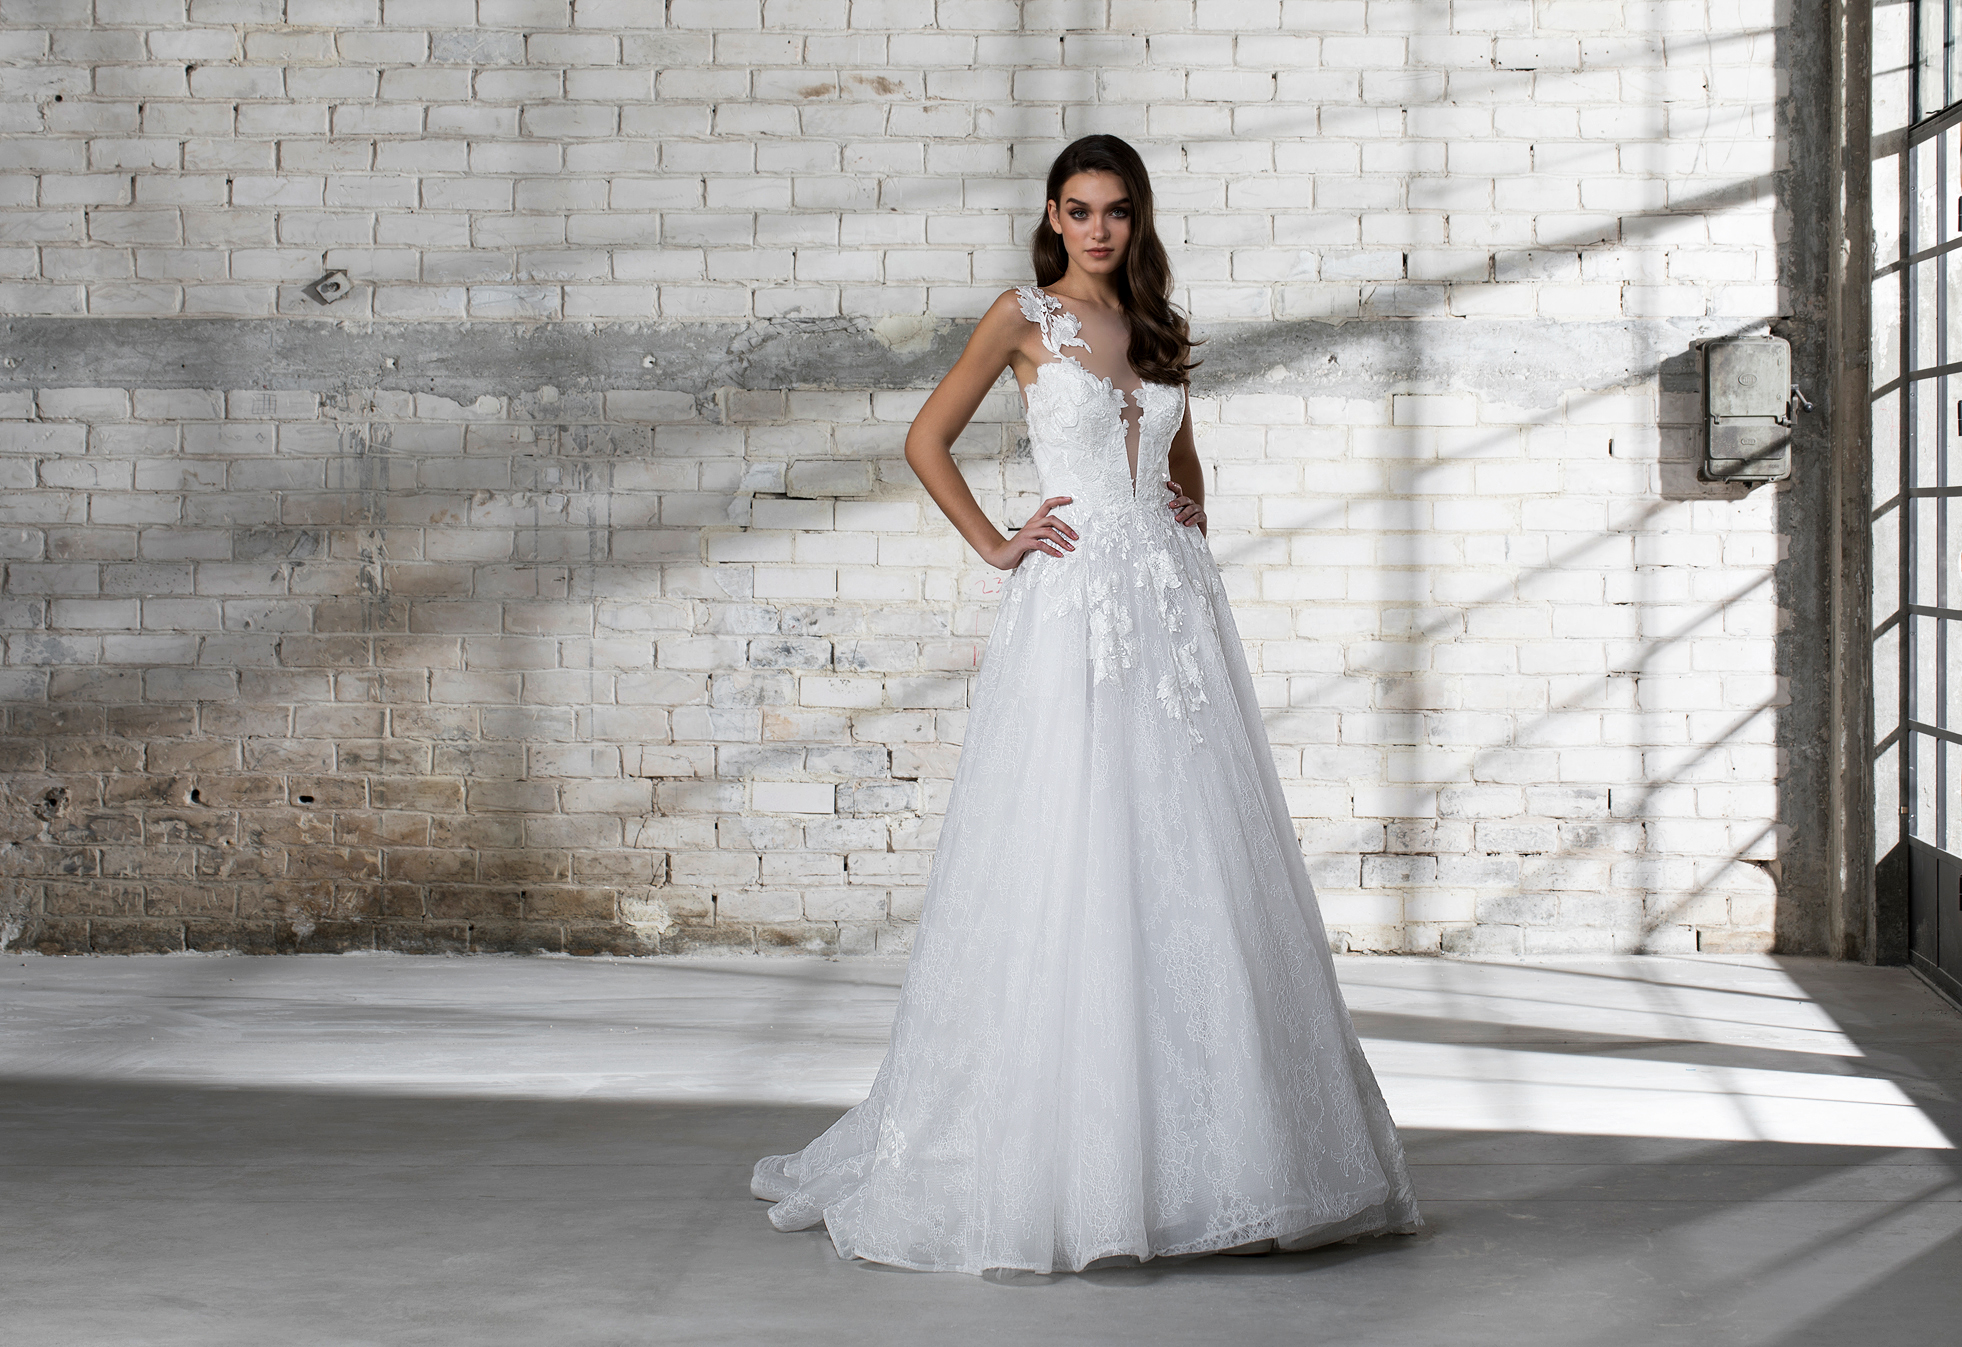 pnina tornai wedding dress spring 2019 a-line sleeveless embellished